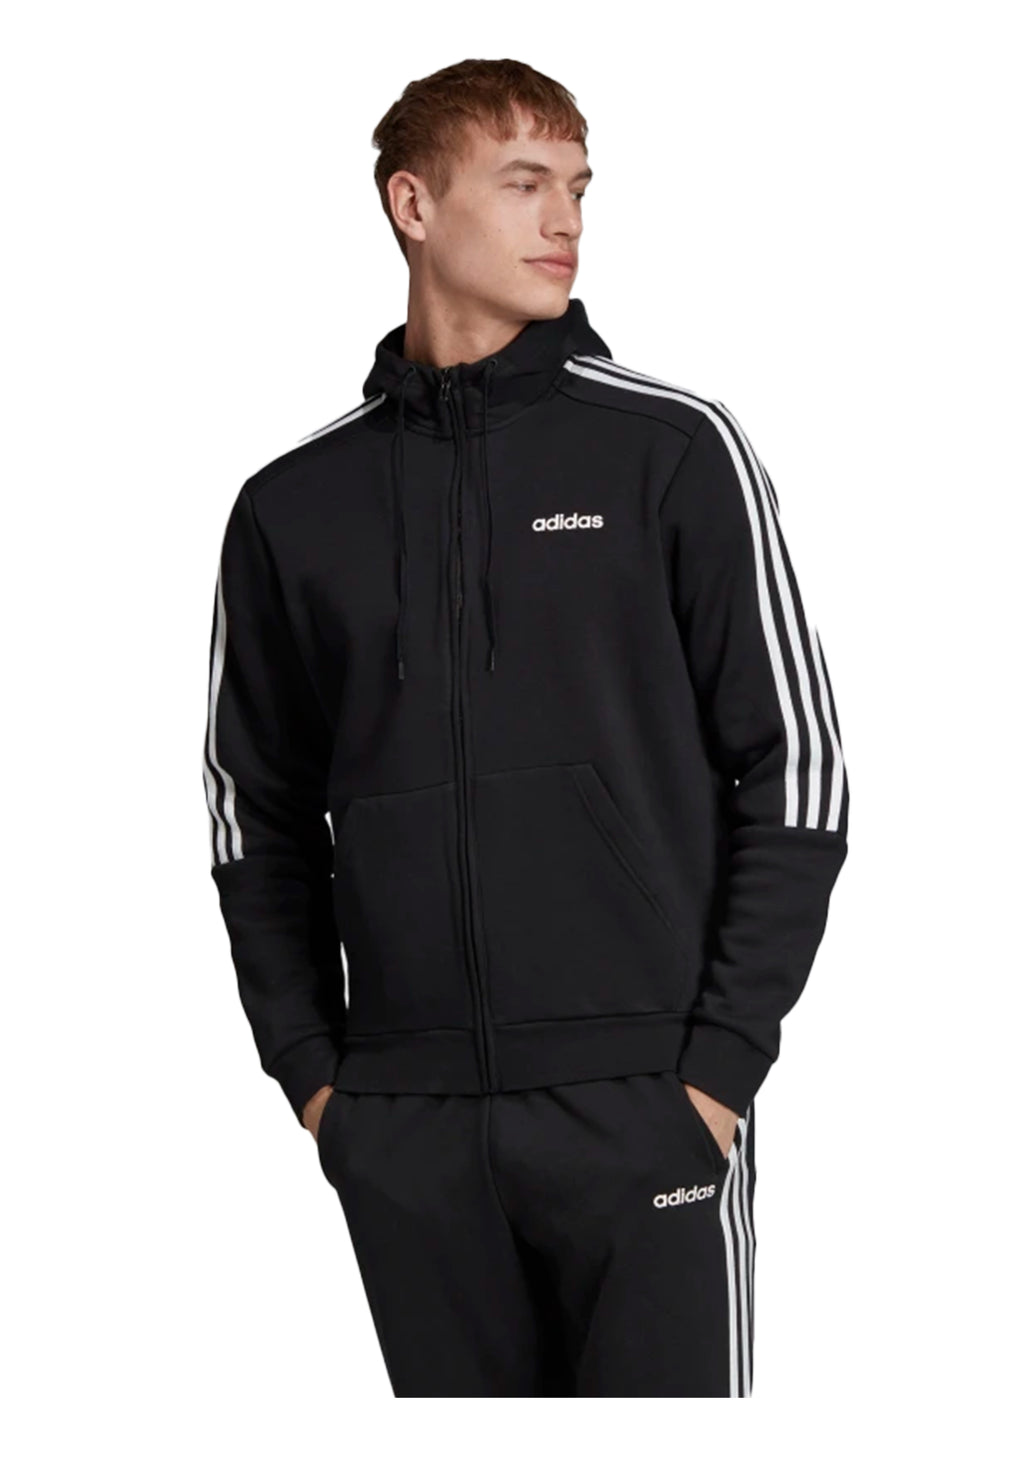 ADIDAS MENS 3 STRIPE HOODED TRACK JACKET <BR>